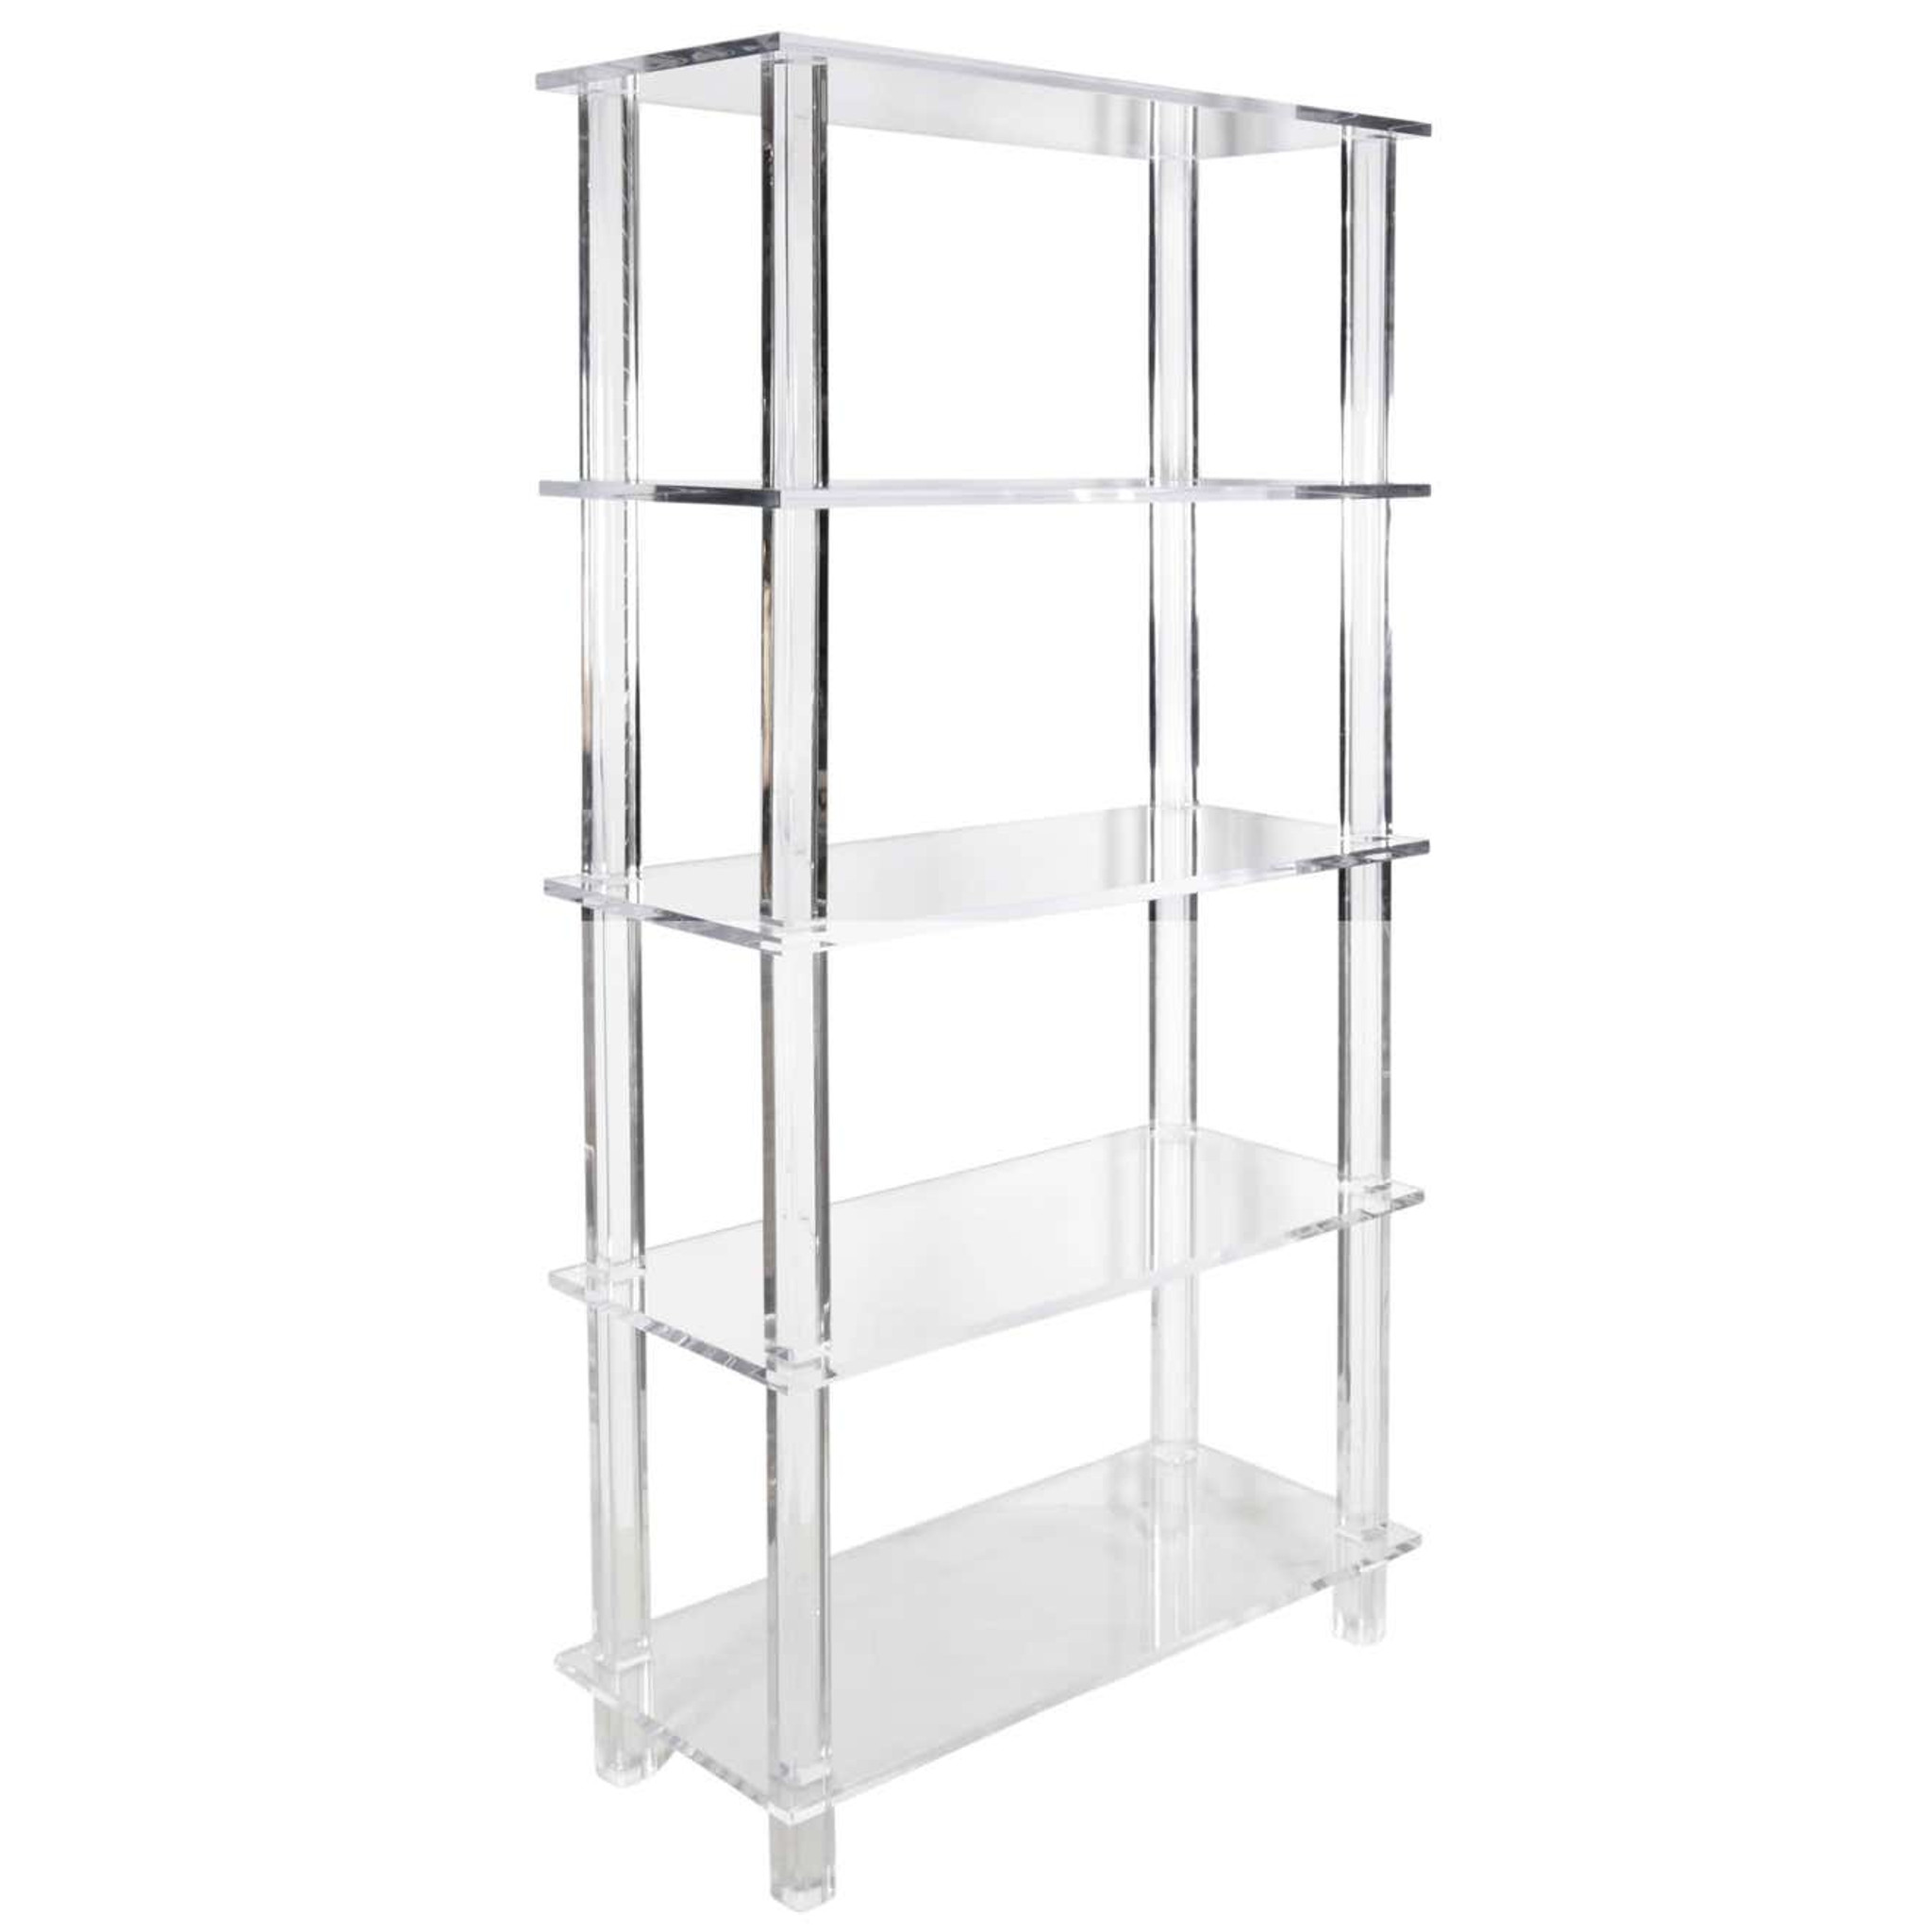 Clear Lucite Bookcase with Overhang Shelves